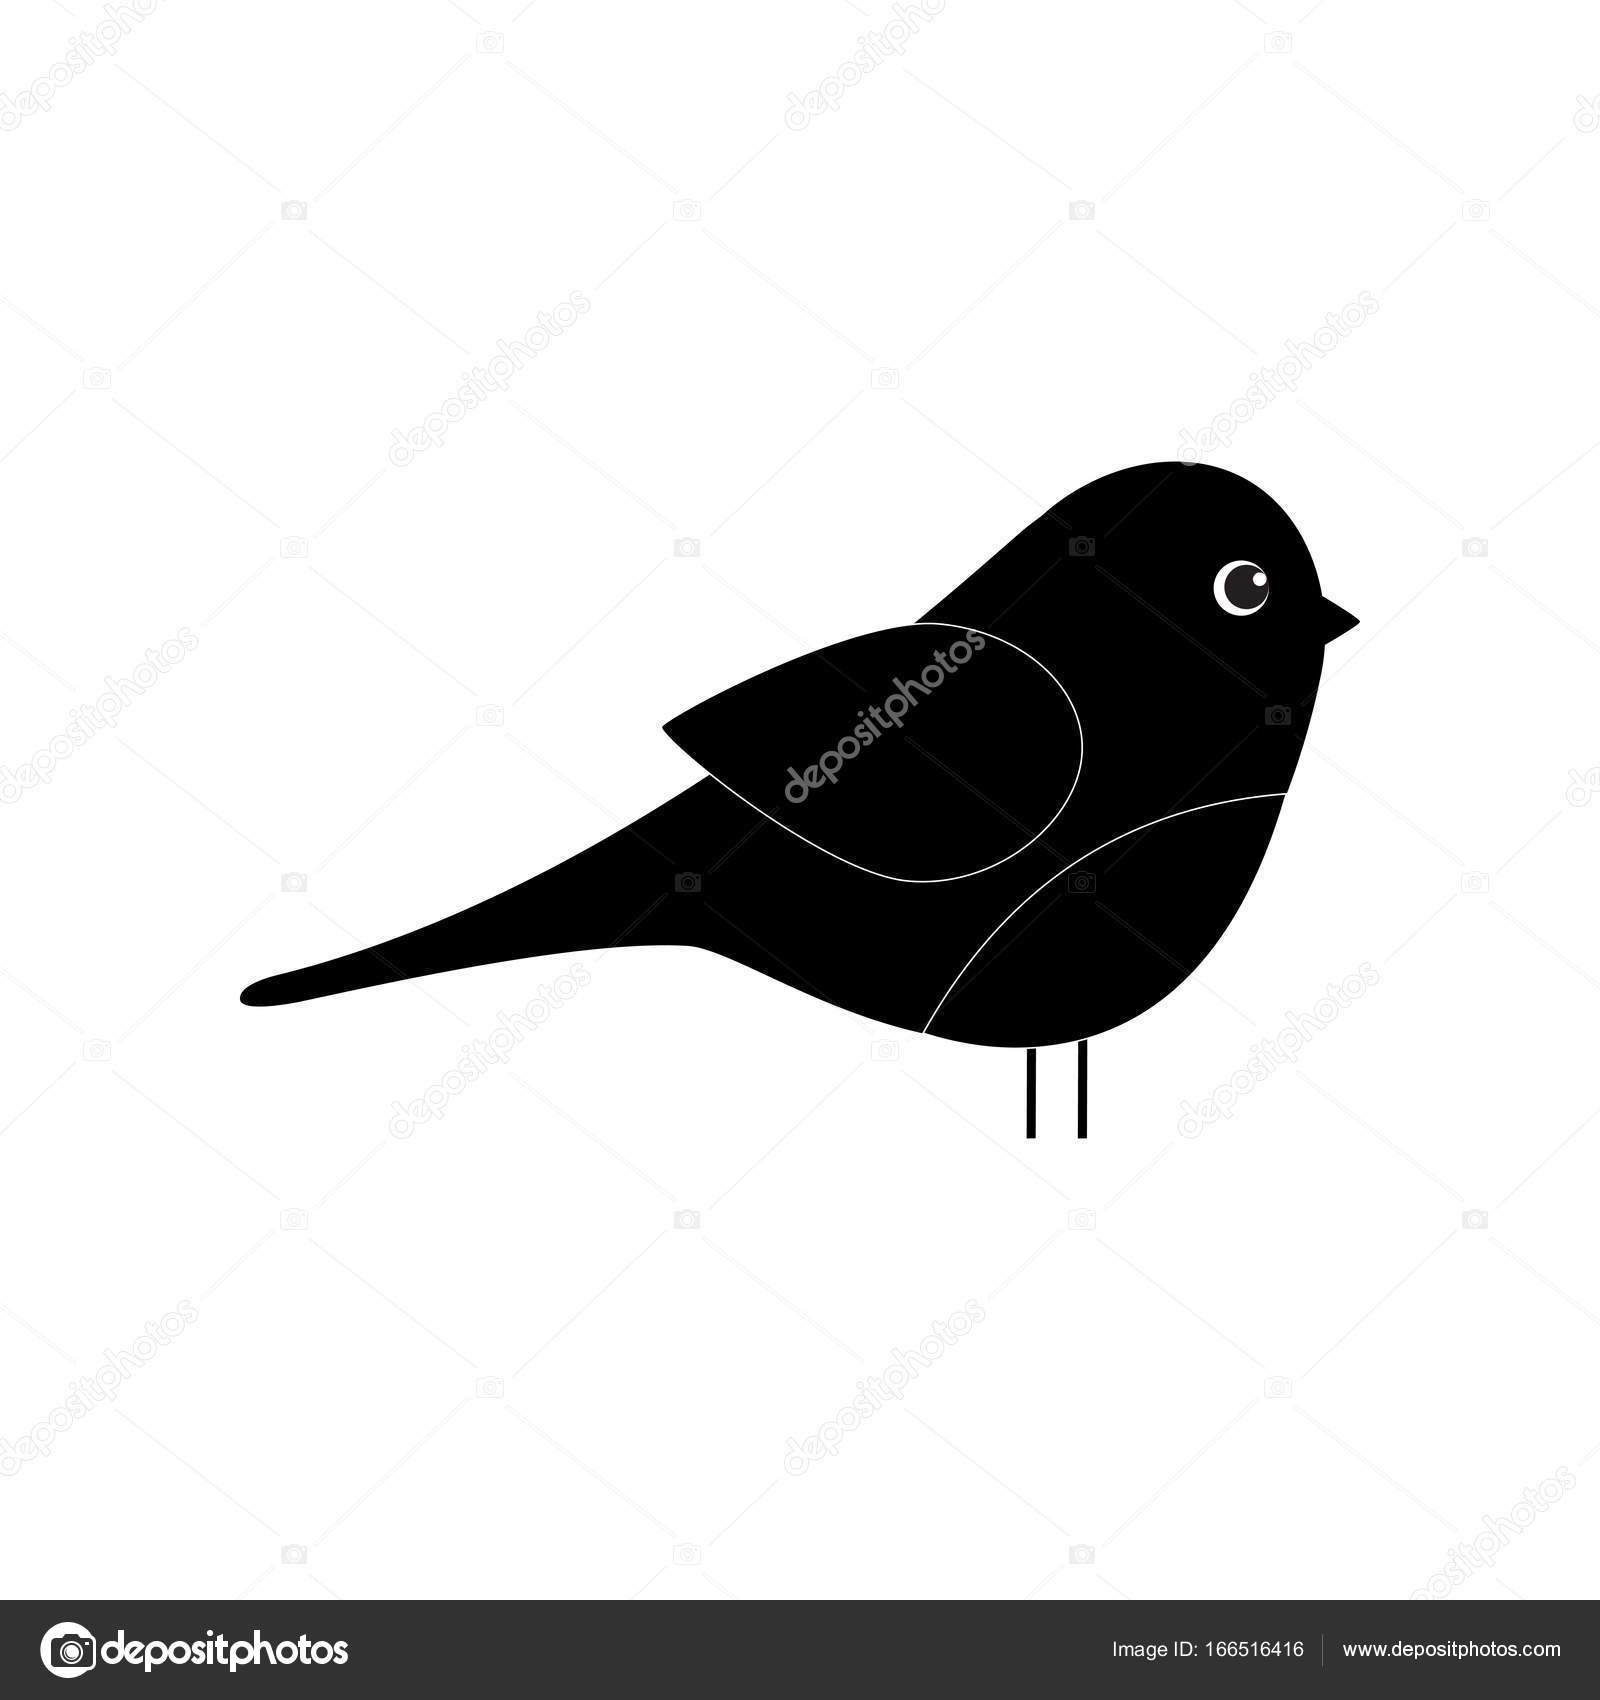 Petit Oiseau Simple Dessin Anime Image Vectorielle Sanchesnet1